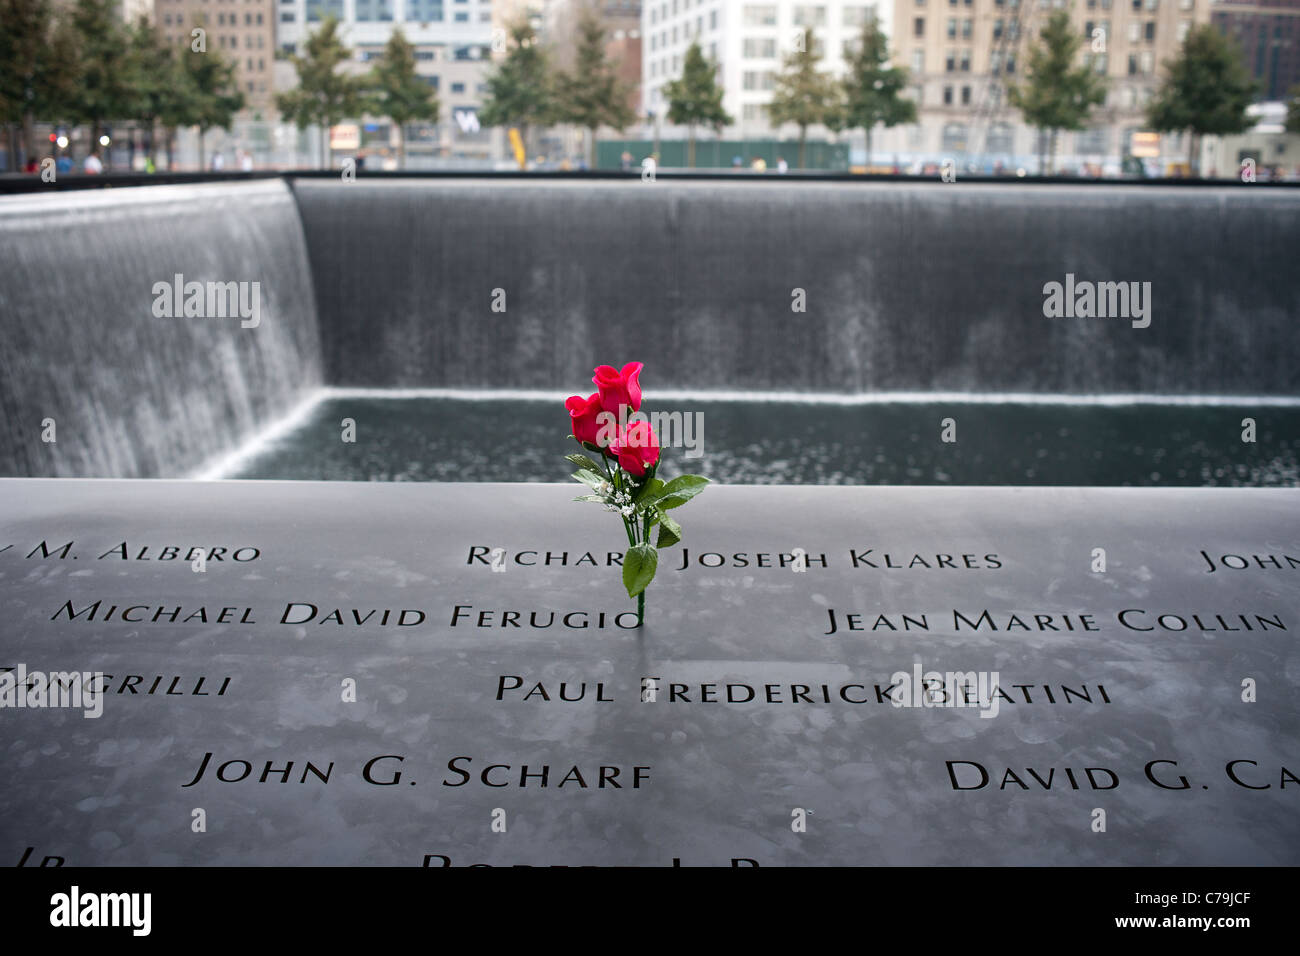 Visitors leave remembrances on names in the National 9/11 Memorial Plaza in  the World Trade Center site EDITORIAL USE ONLY Stock Photo - Alamy